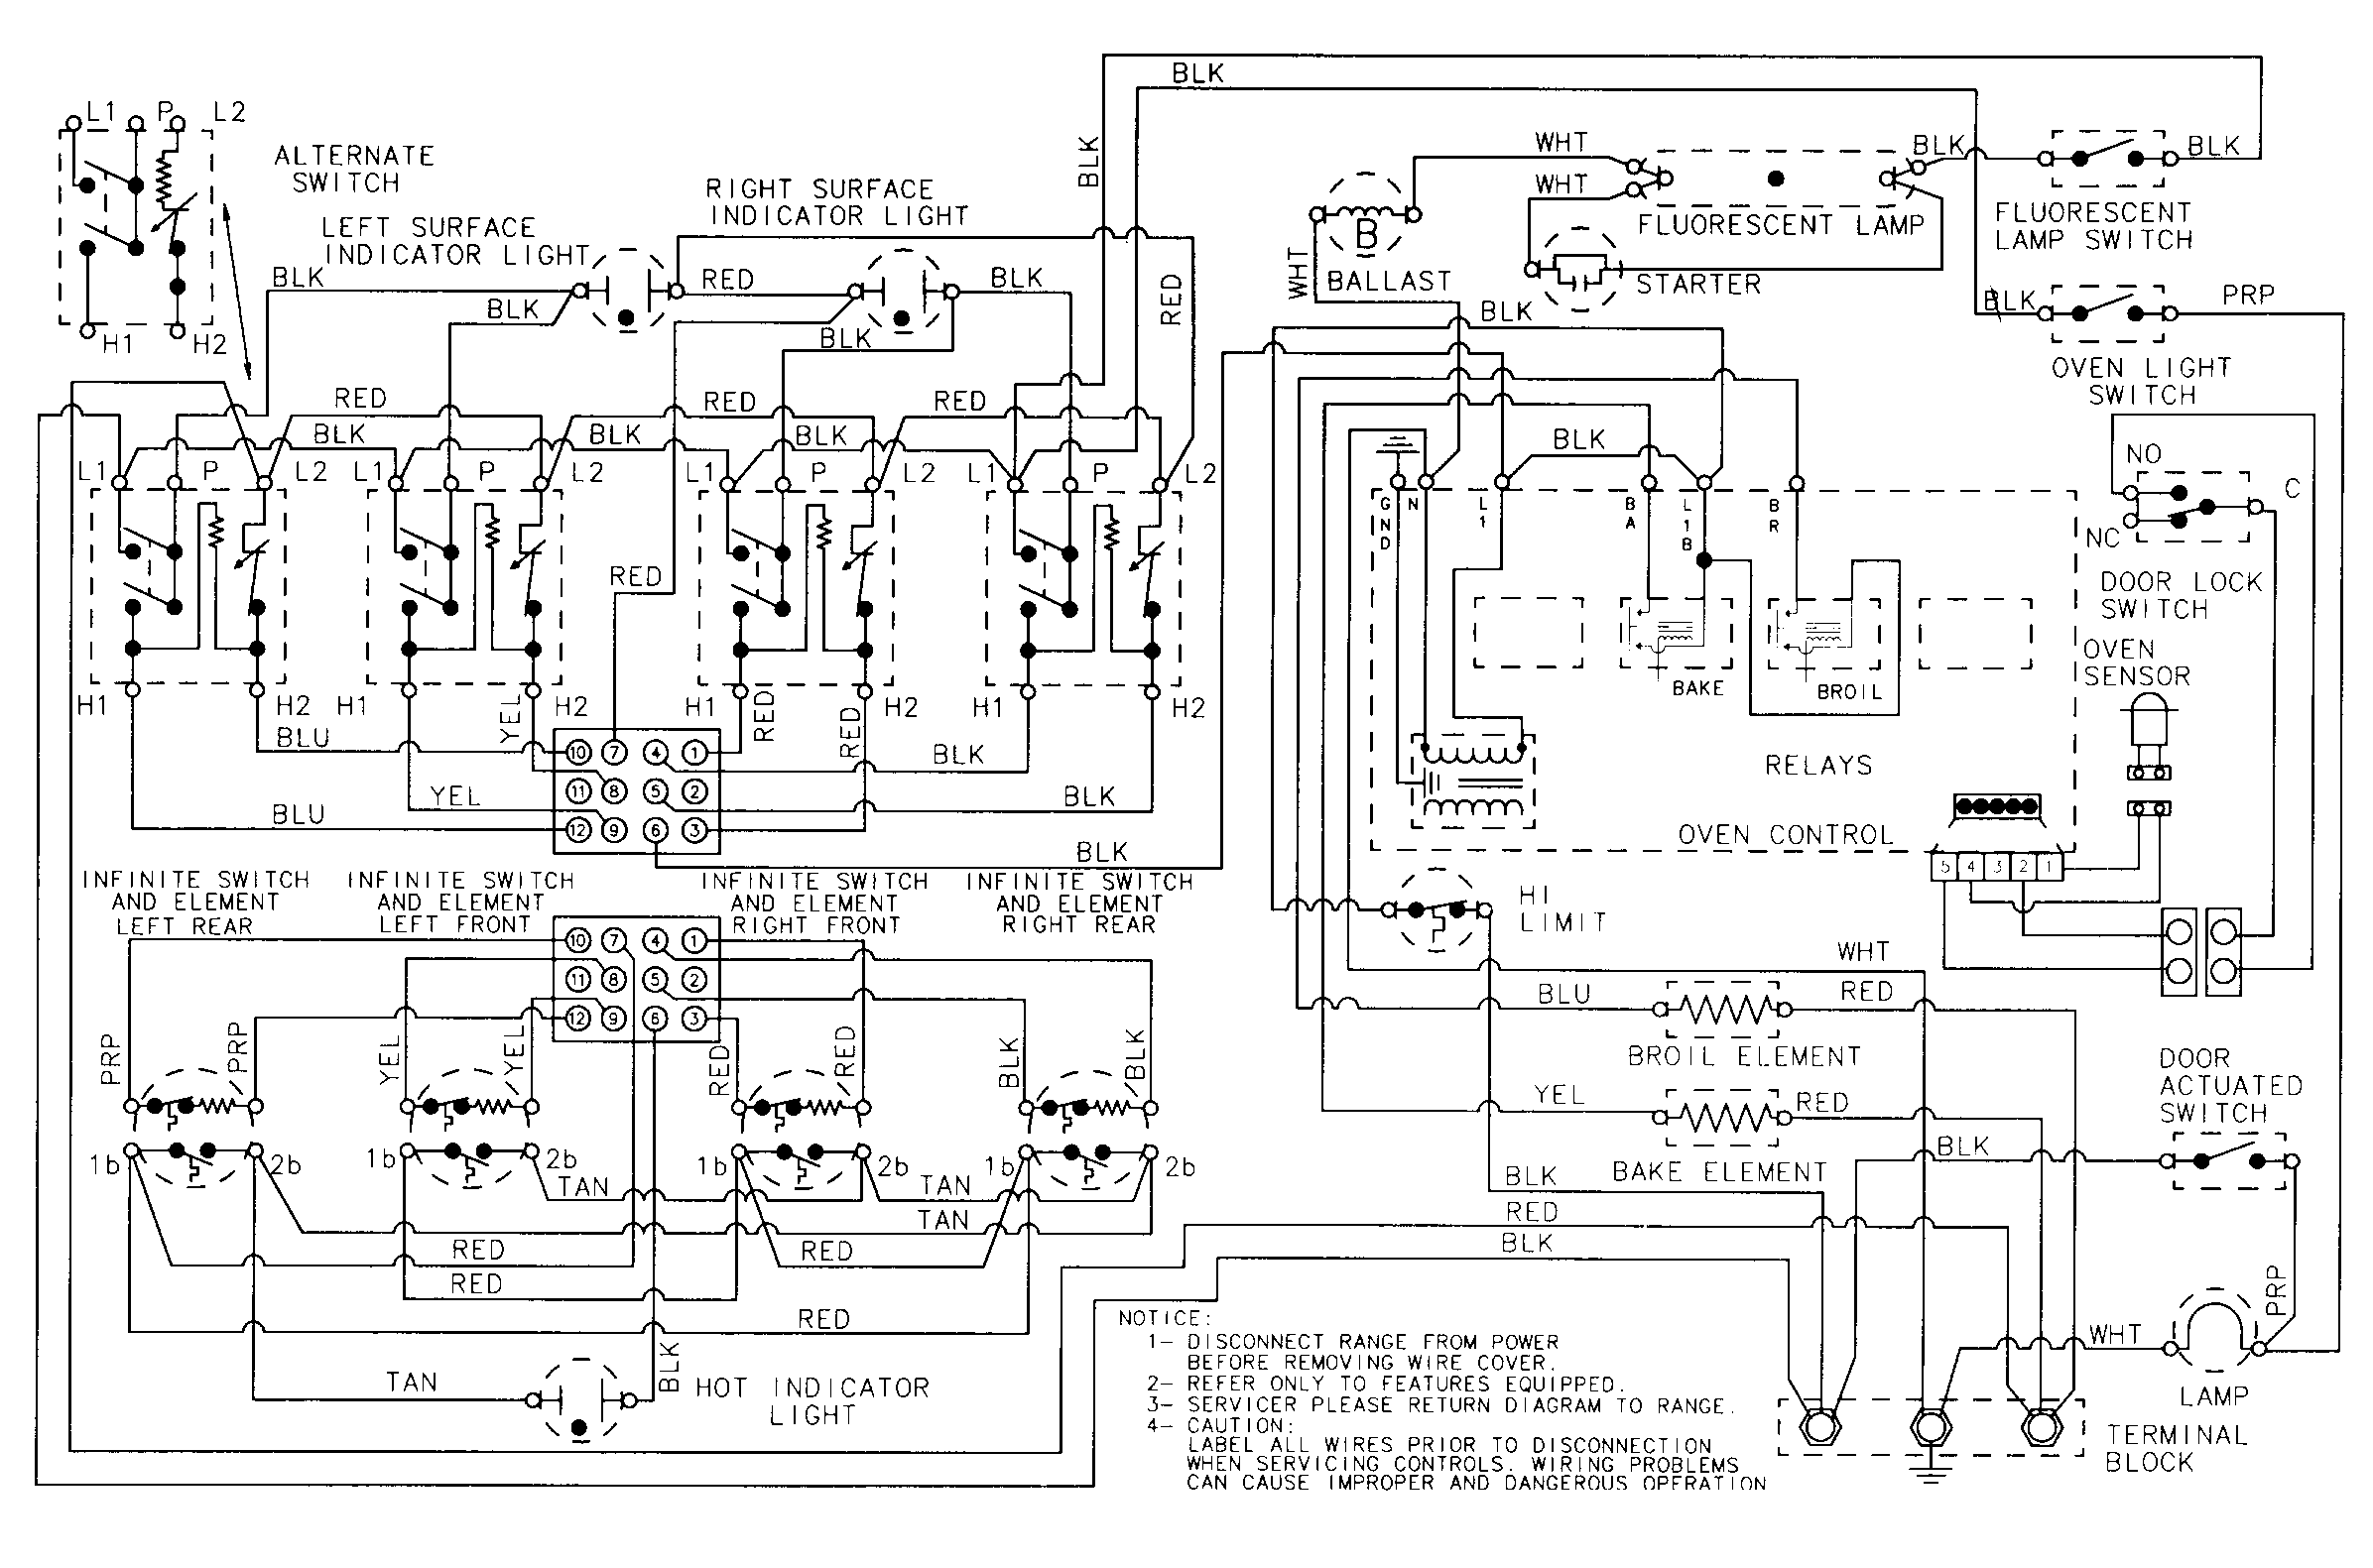 wiring information parts york control board wiring diagram electric motor control circuit lh33wp003a wiring diagram at alyssarenee.co